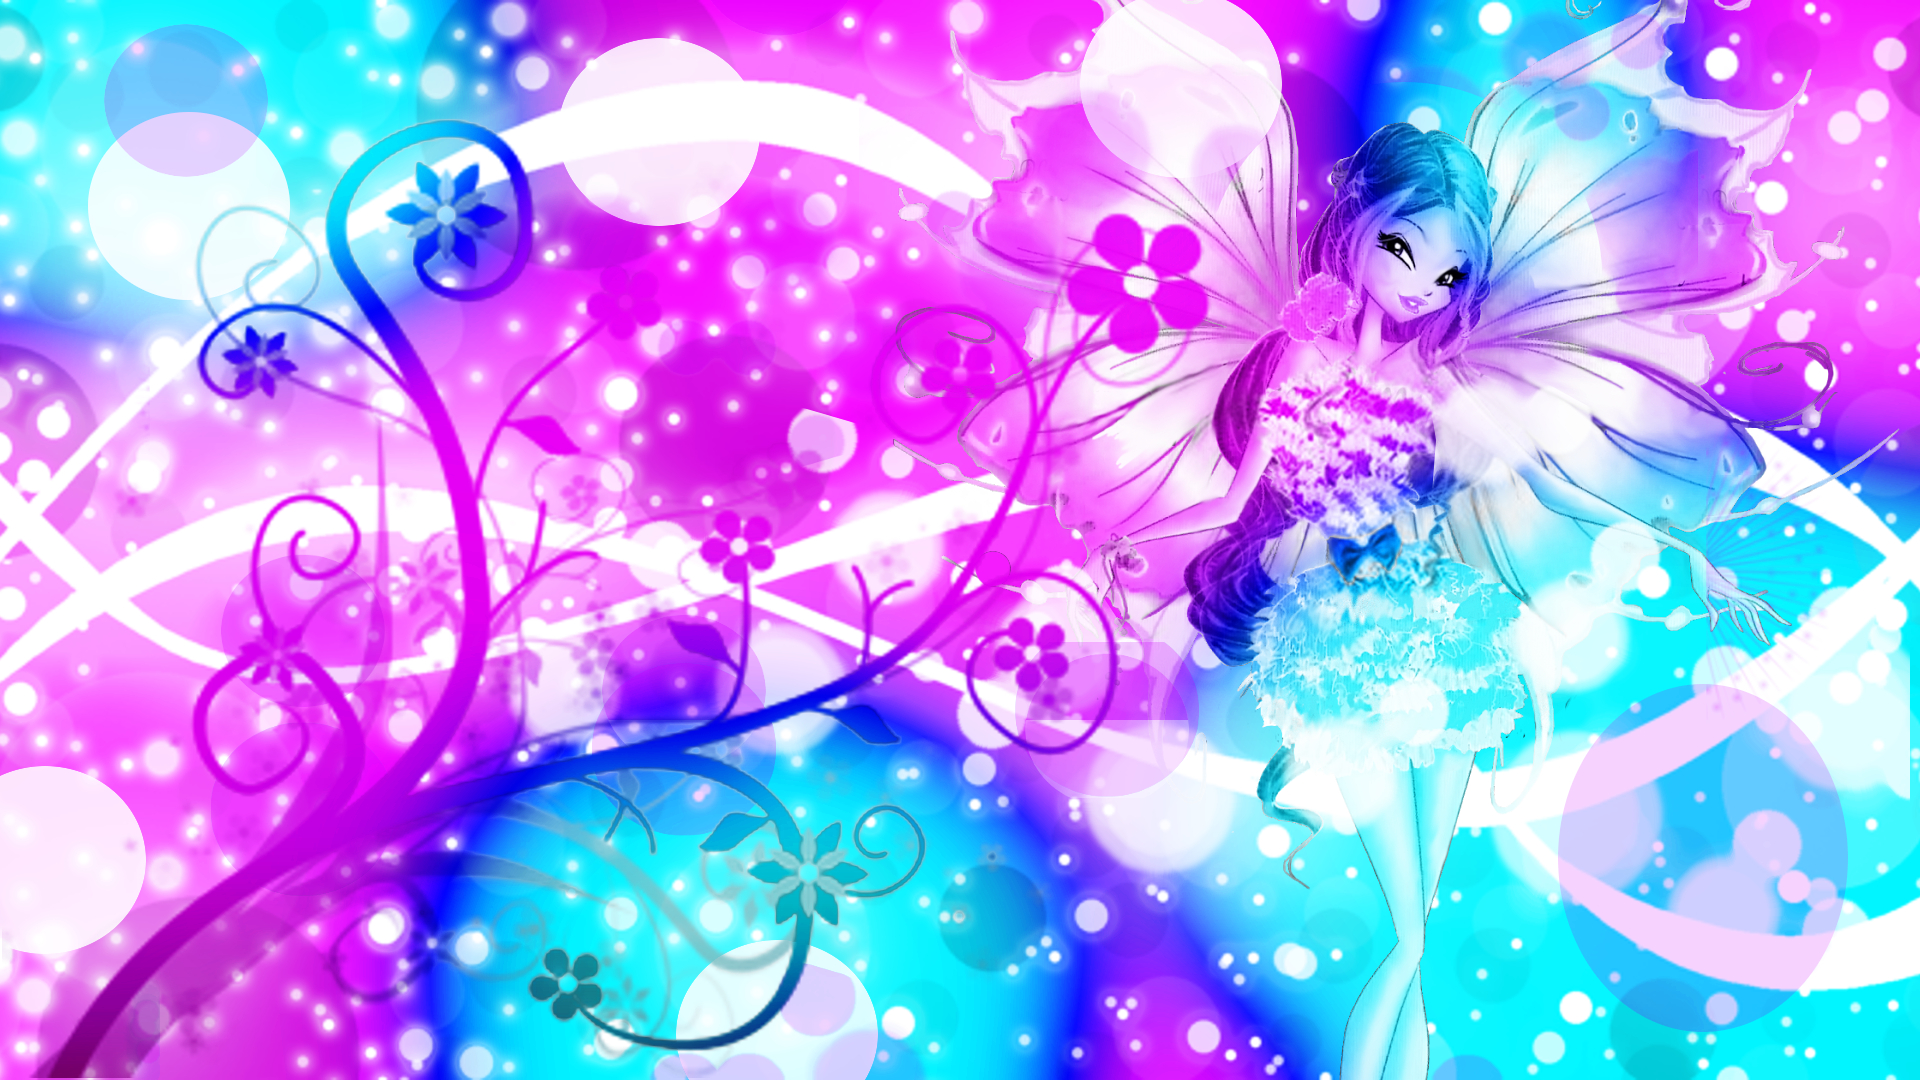 the winx club images winx club hd wallpaper and background